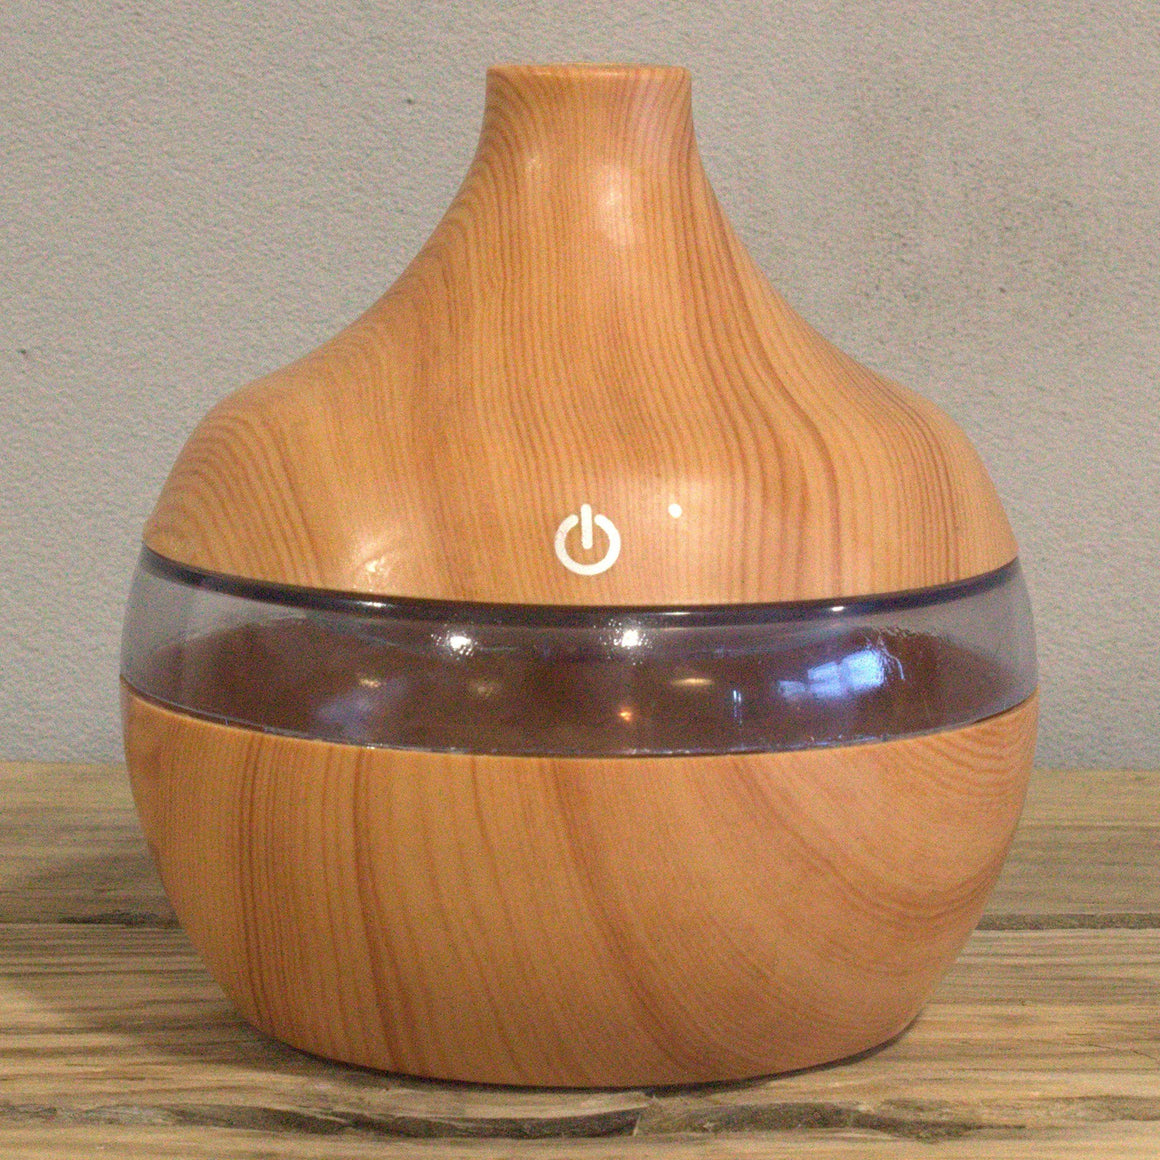 Up-Funnel Beechwood Ultrasonic Aroma Humidifier